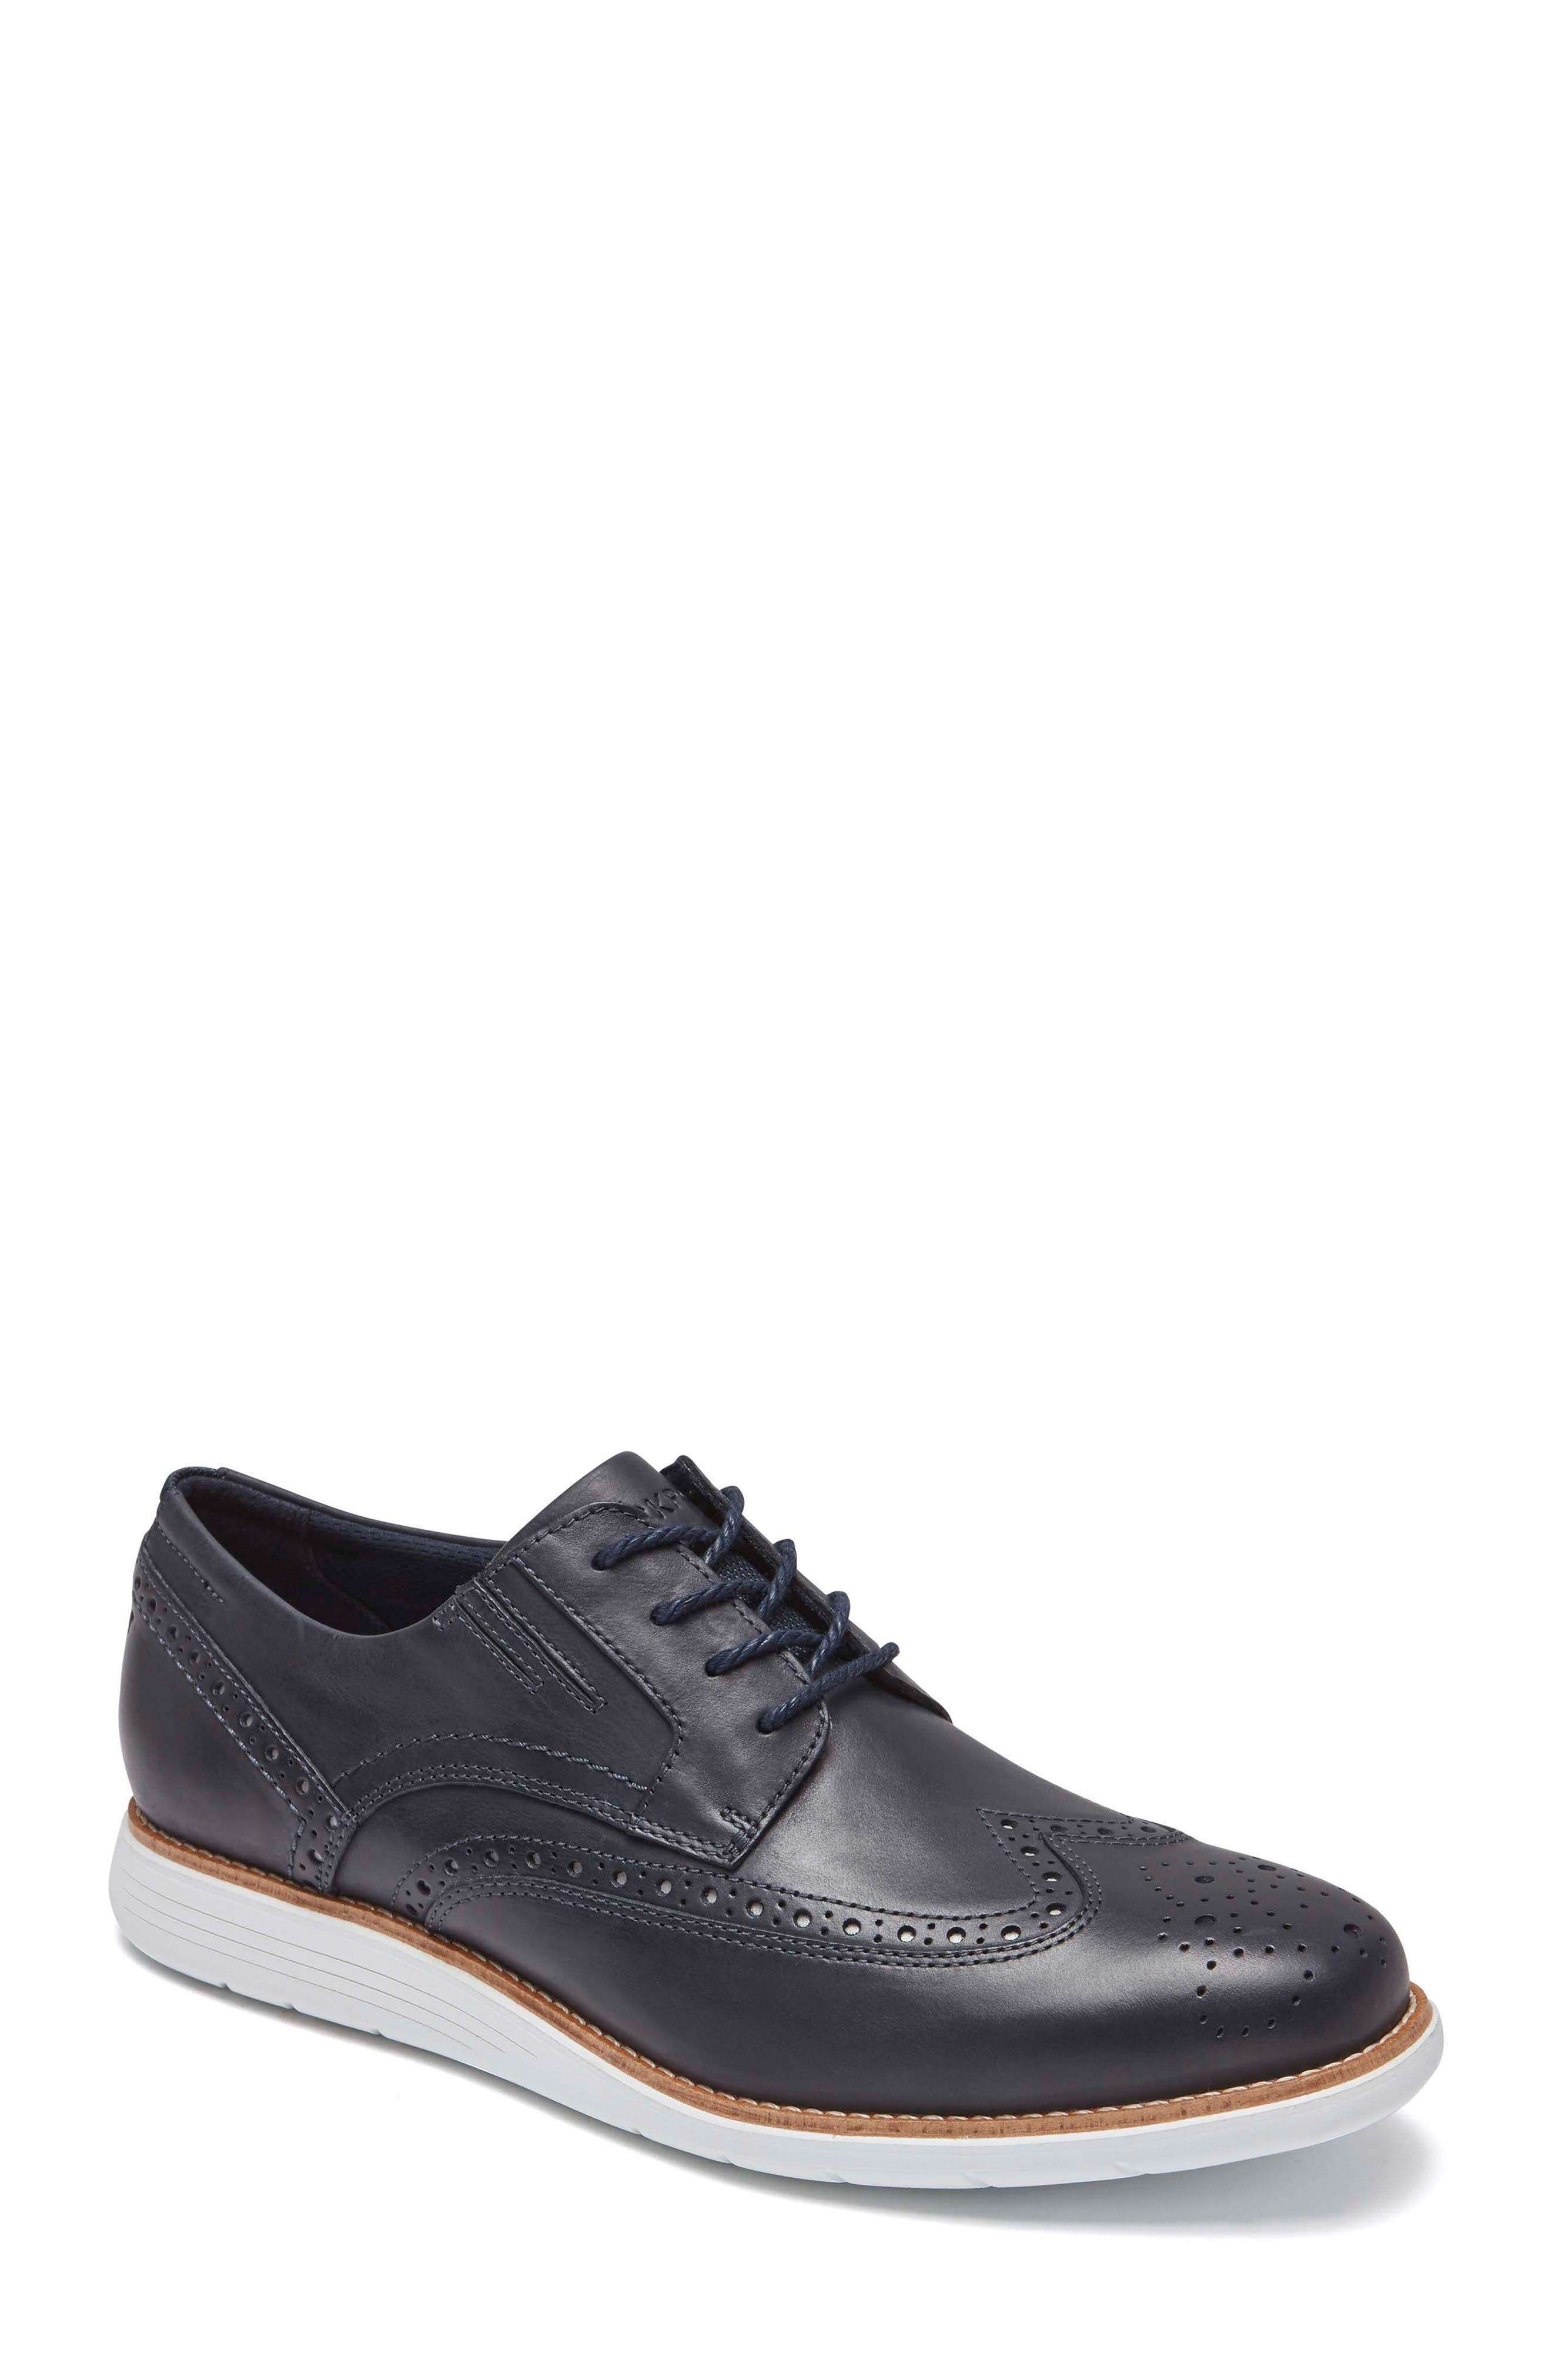 Total Motion Sport Wingtip,                         Main,                         color, New Dress Blue Leather